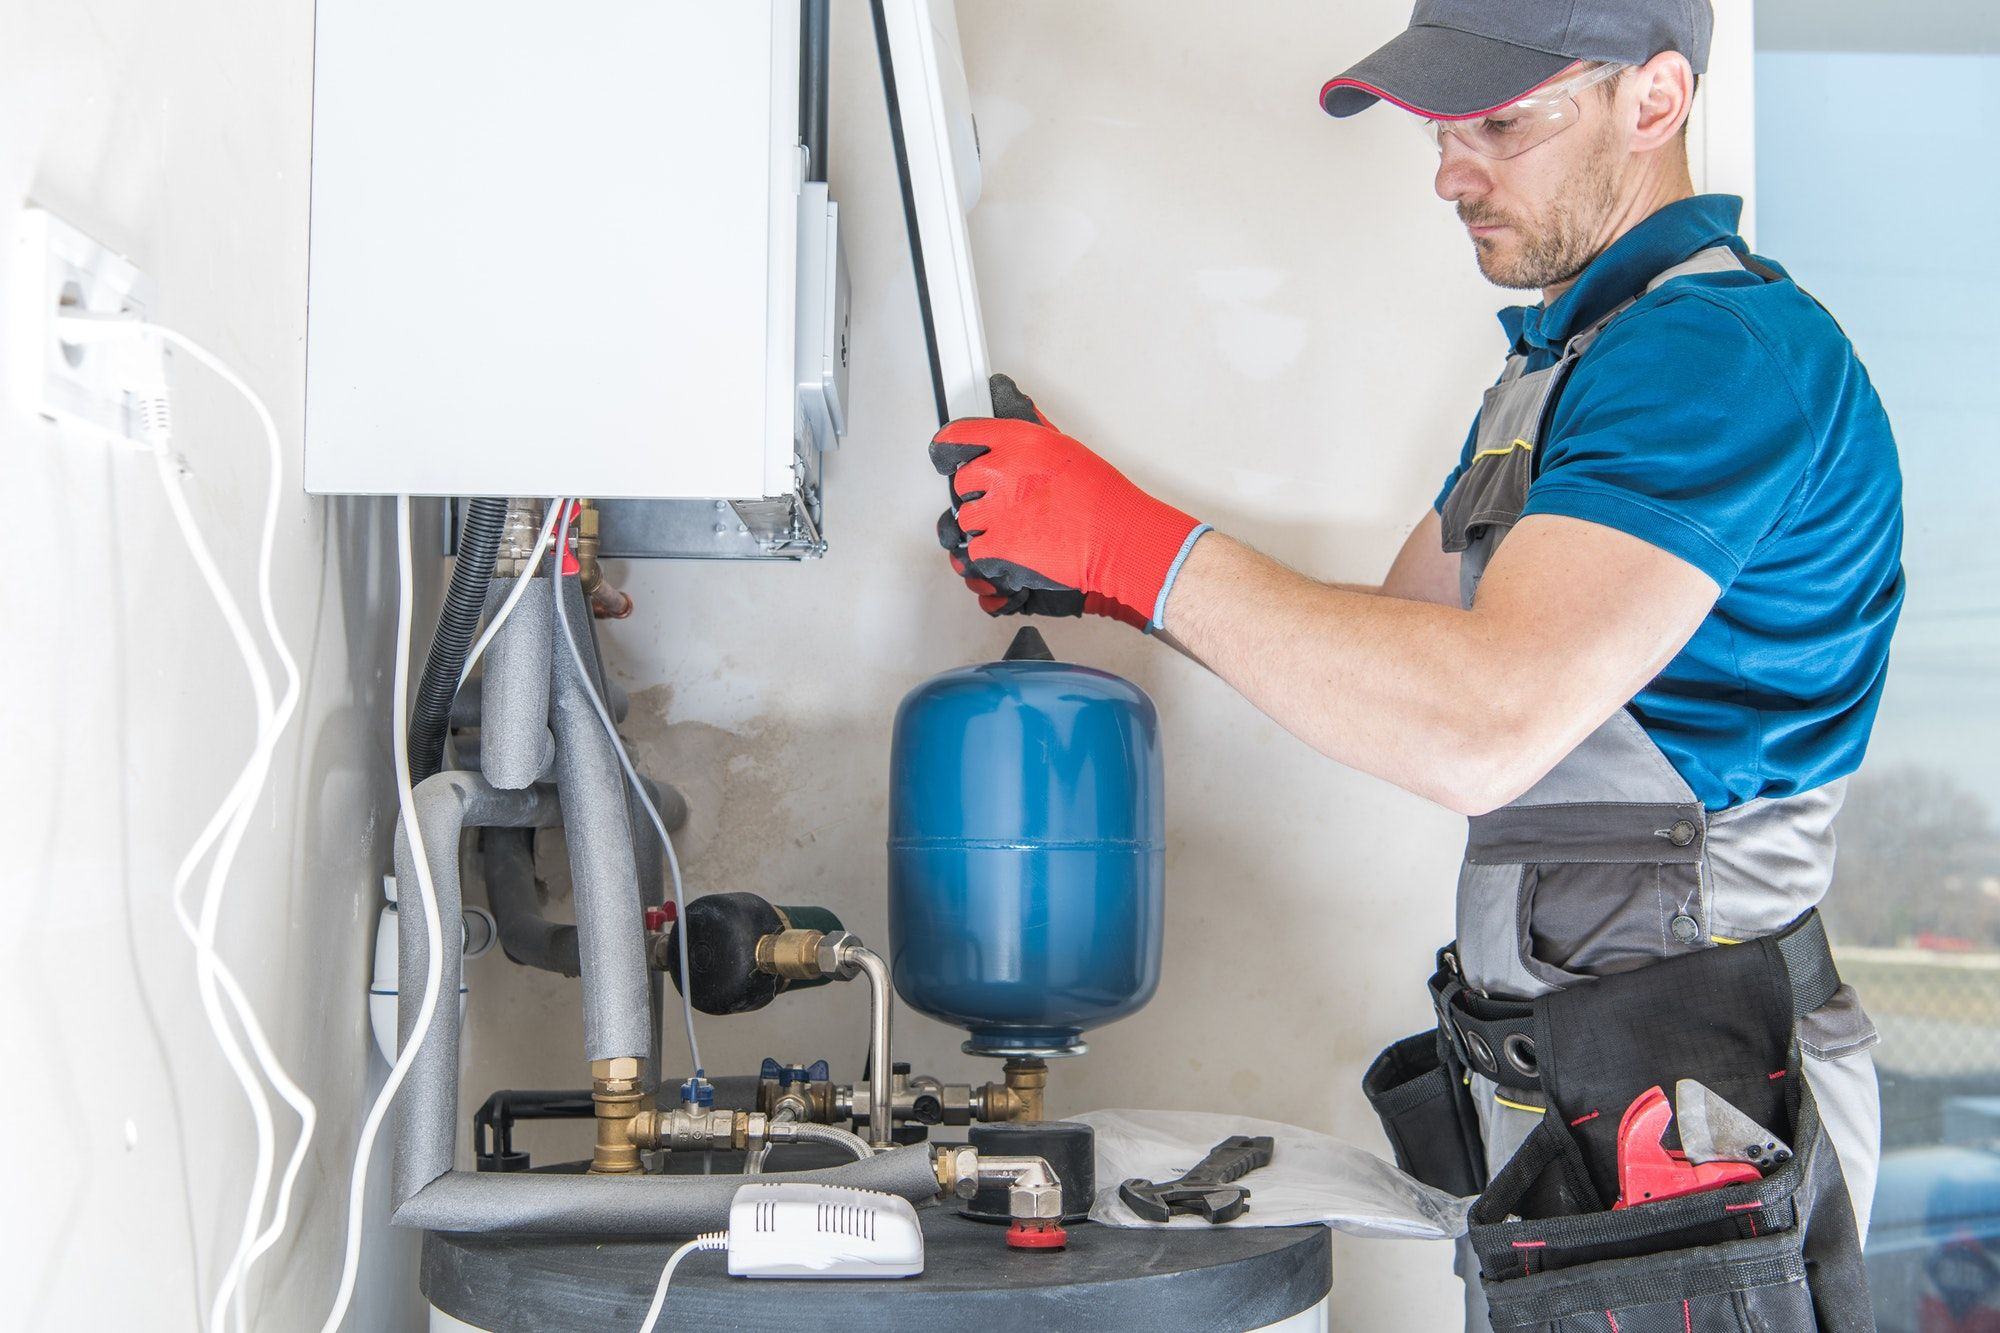 For the best quality ac repair technicians in Los Angeles